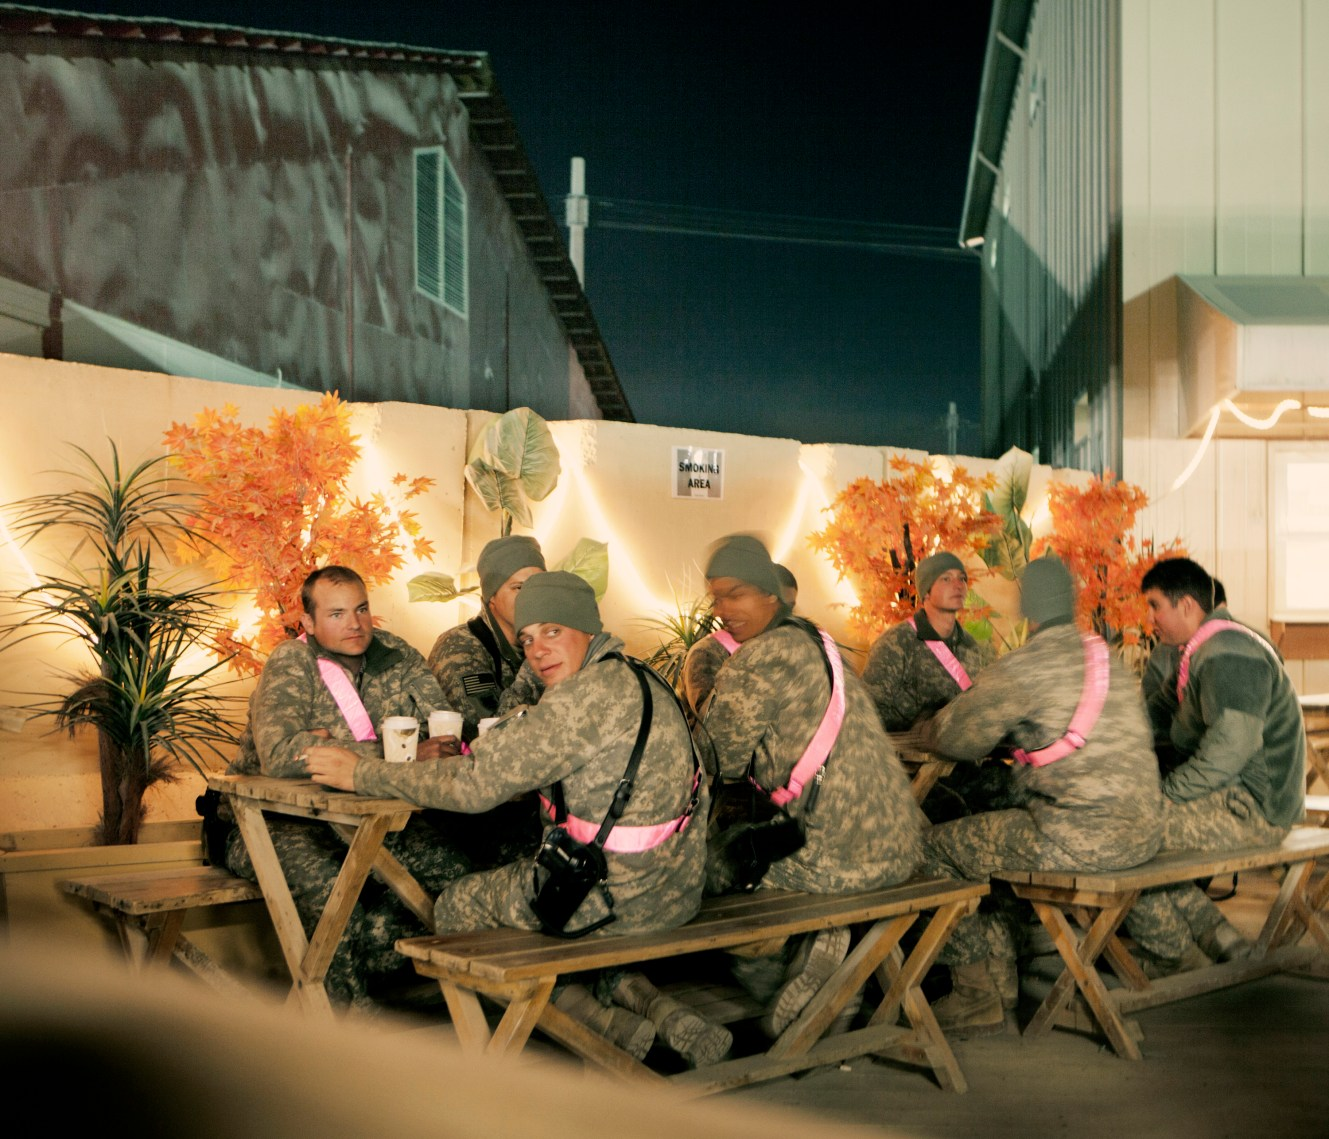 A group of American soldiers take a break in one of Camp Bastion's cafes. In June 2011, President Obama announced his plan to begin the withdrawal of US troops from Afghanistan, but there is currently no end date for the war in the troubled country. Helmand is the largest province in Afghanistan, and the heart of the war against terror. Commanders on the ground have described the situation as the most brutal conflict the British Army has been involved in since the Korean War. Much of the fighting between NATO and Taliban forces is taking place in this province and Helmand is a true Taliban stronghold. The Helmand River flows through the mainly desert region. With these images I am trying to show a softer side to this troubled area of Afghanistan.